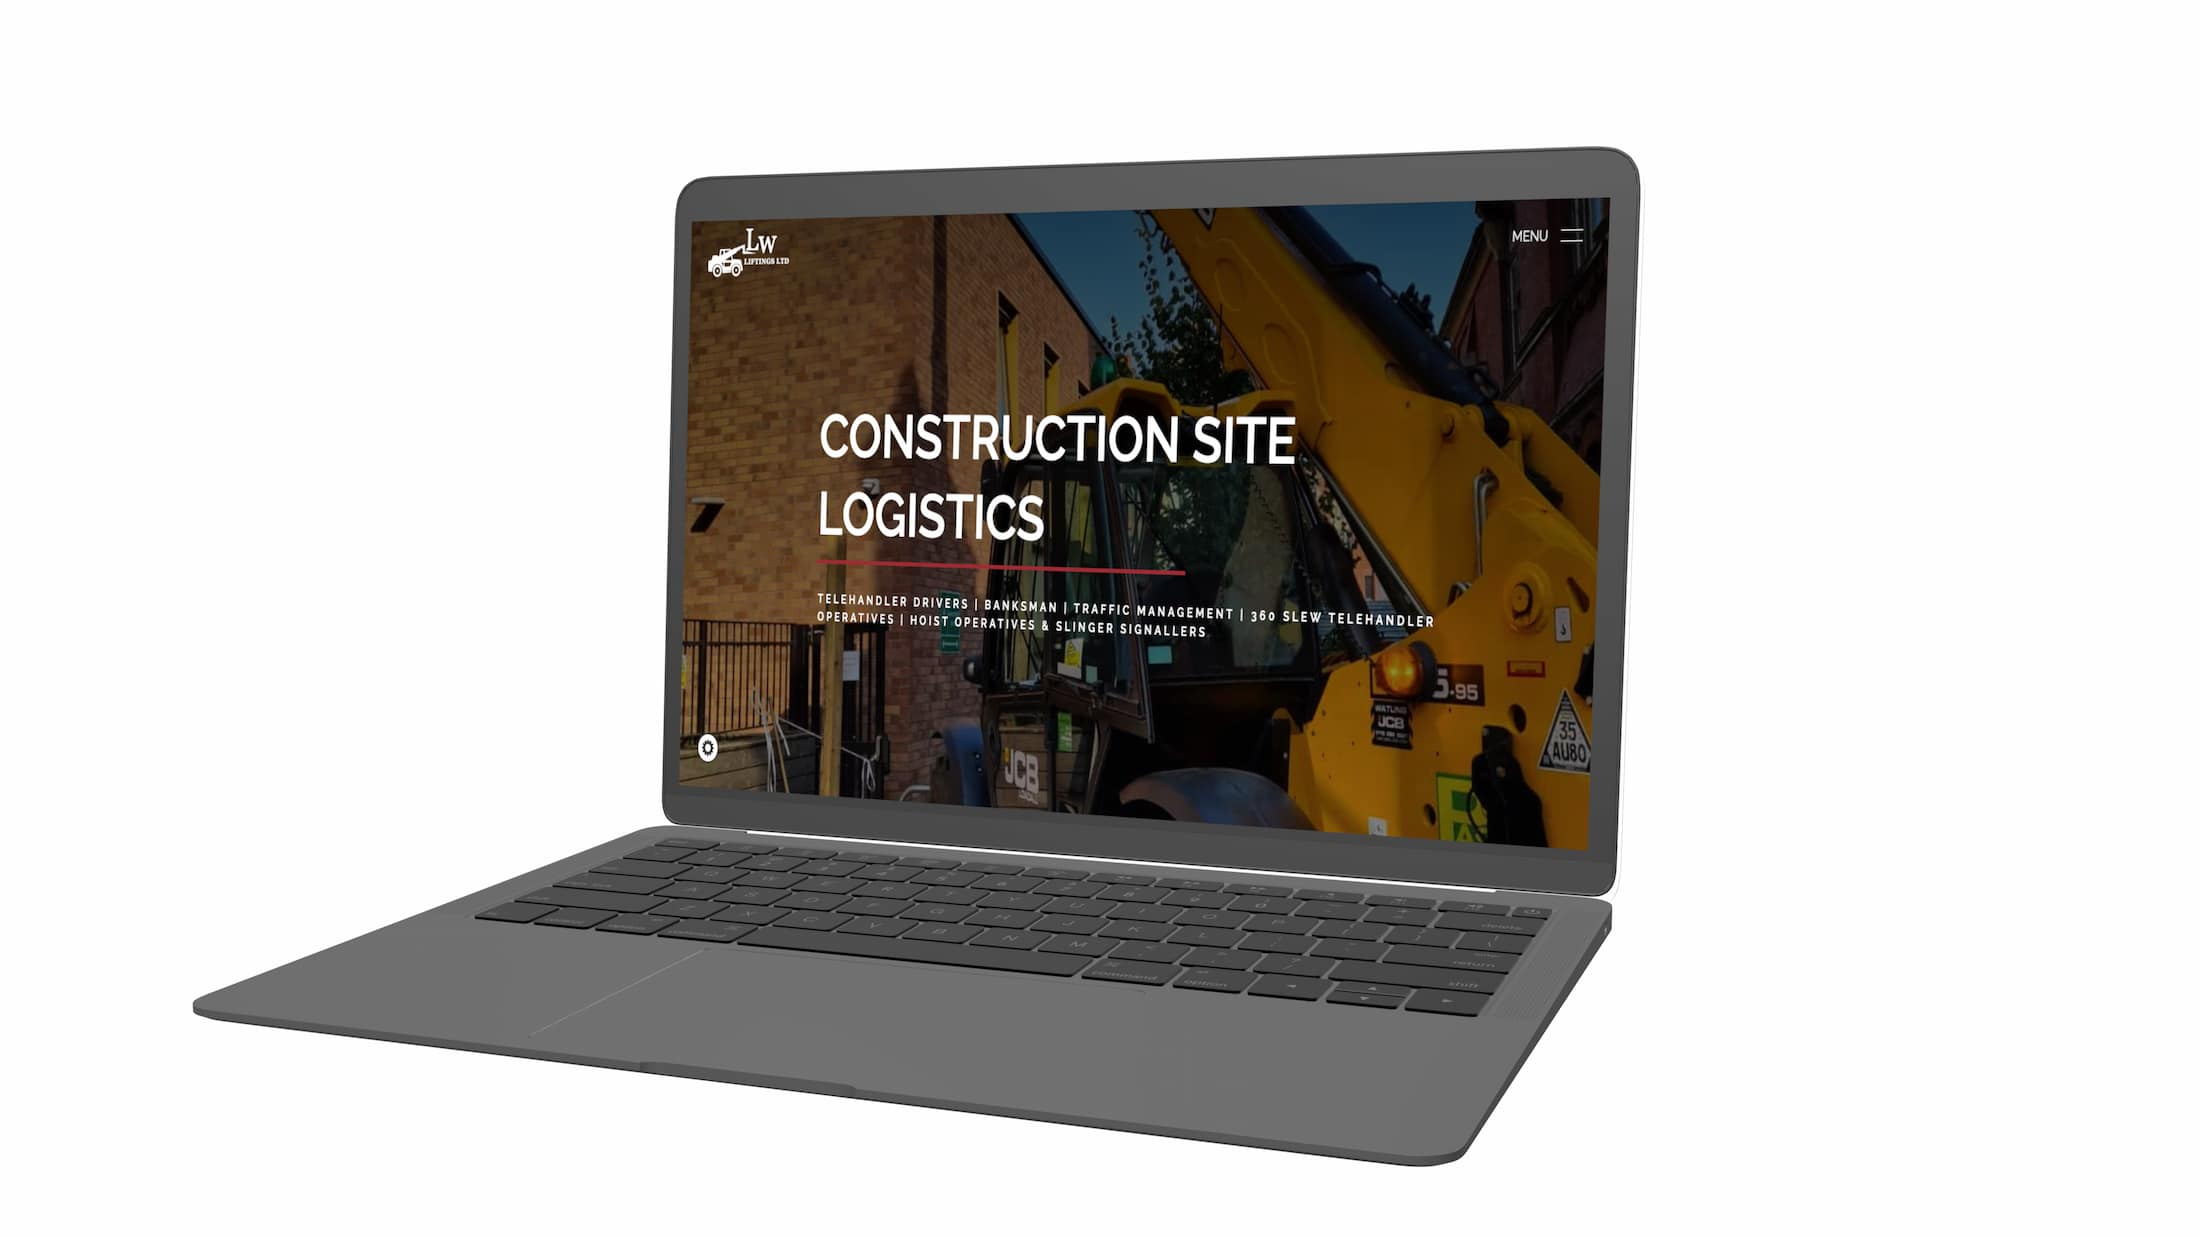 web developer mockup with lw liftings construction website on a laptop with screen open